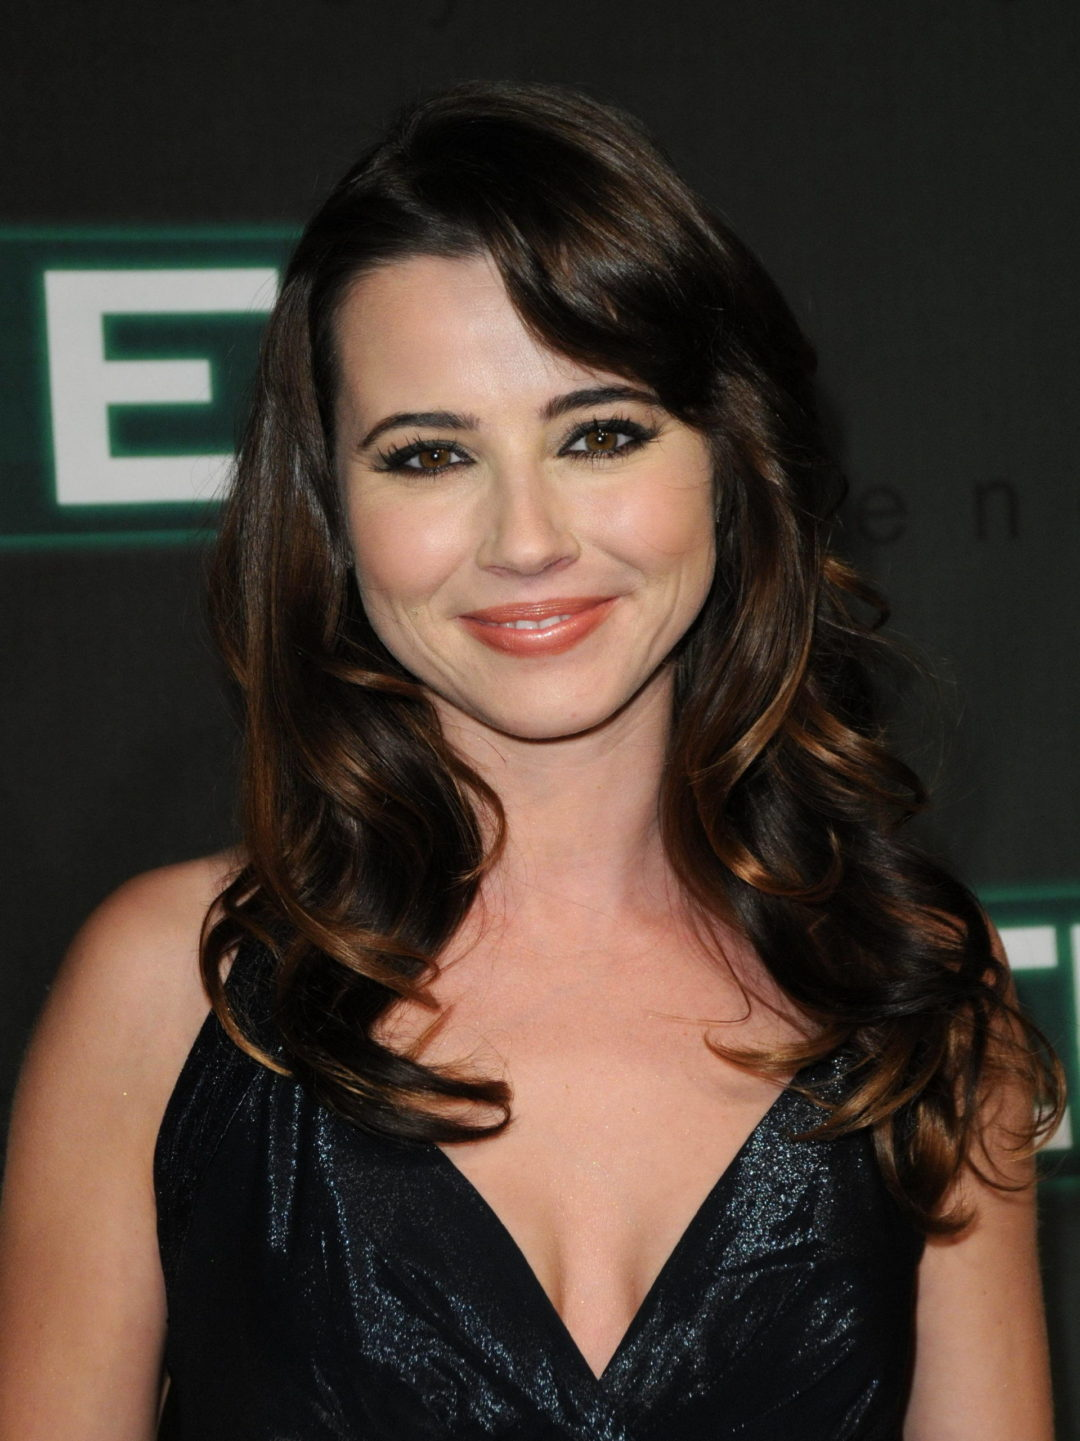 Linda Cardellini Height Weight Age Affairs Body Stats